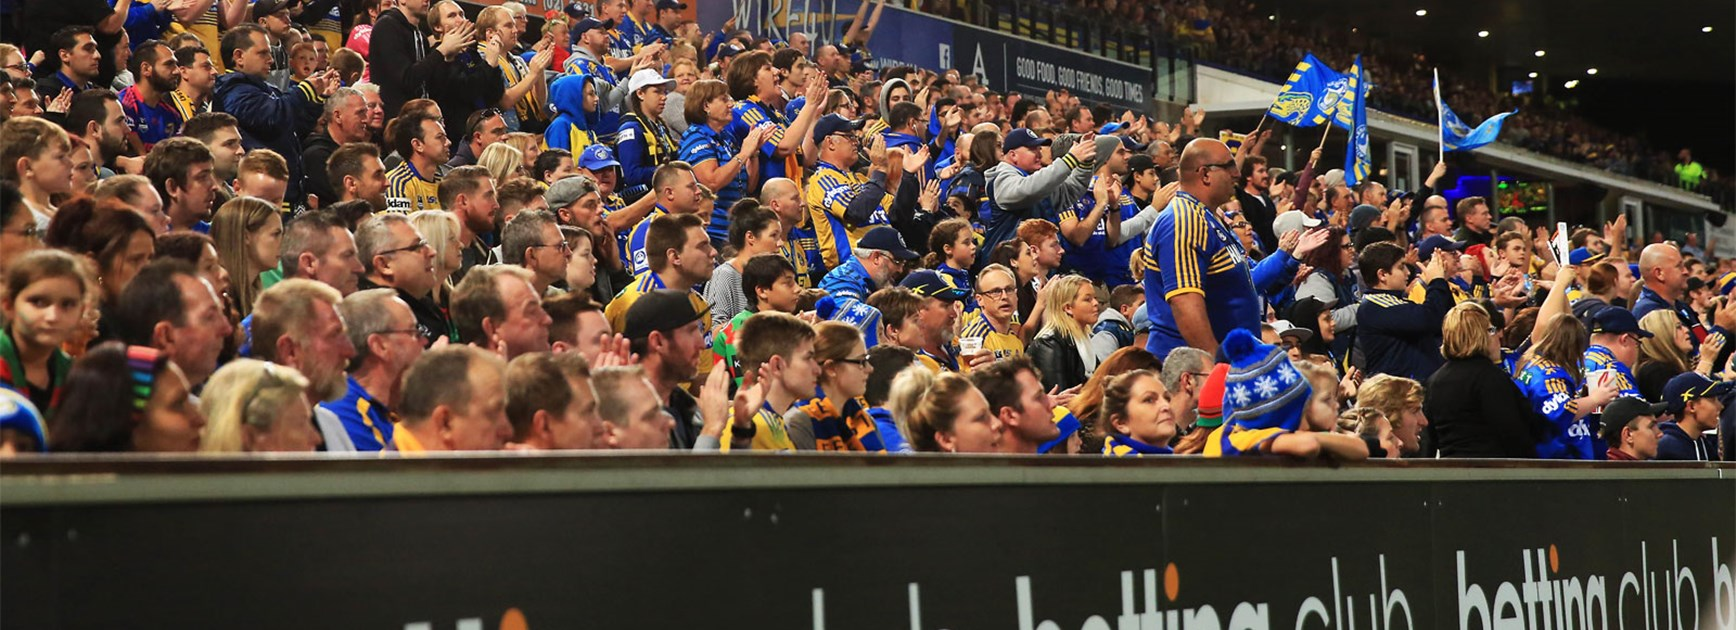 The Parramatta Eels crowd during Thursday night's clash with the Rabbitohs.